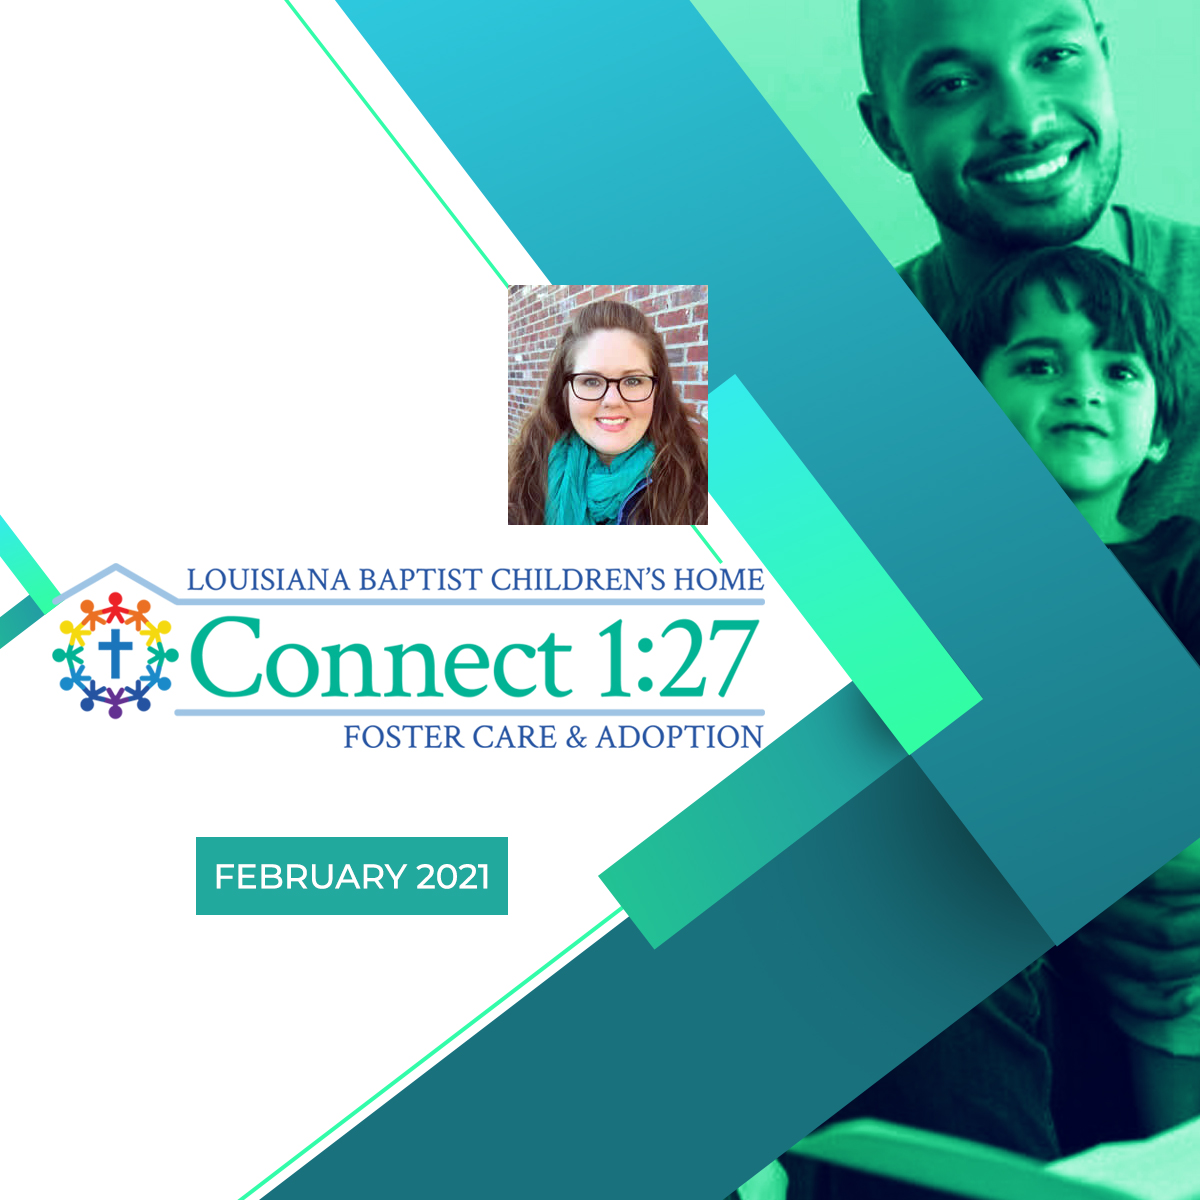 Louisiana Fosters – Connect 1:27